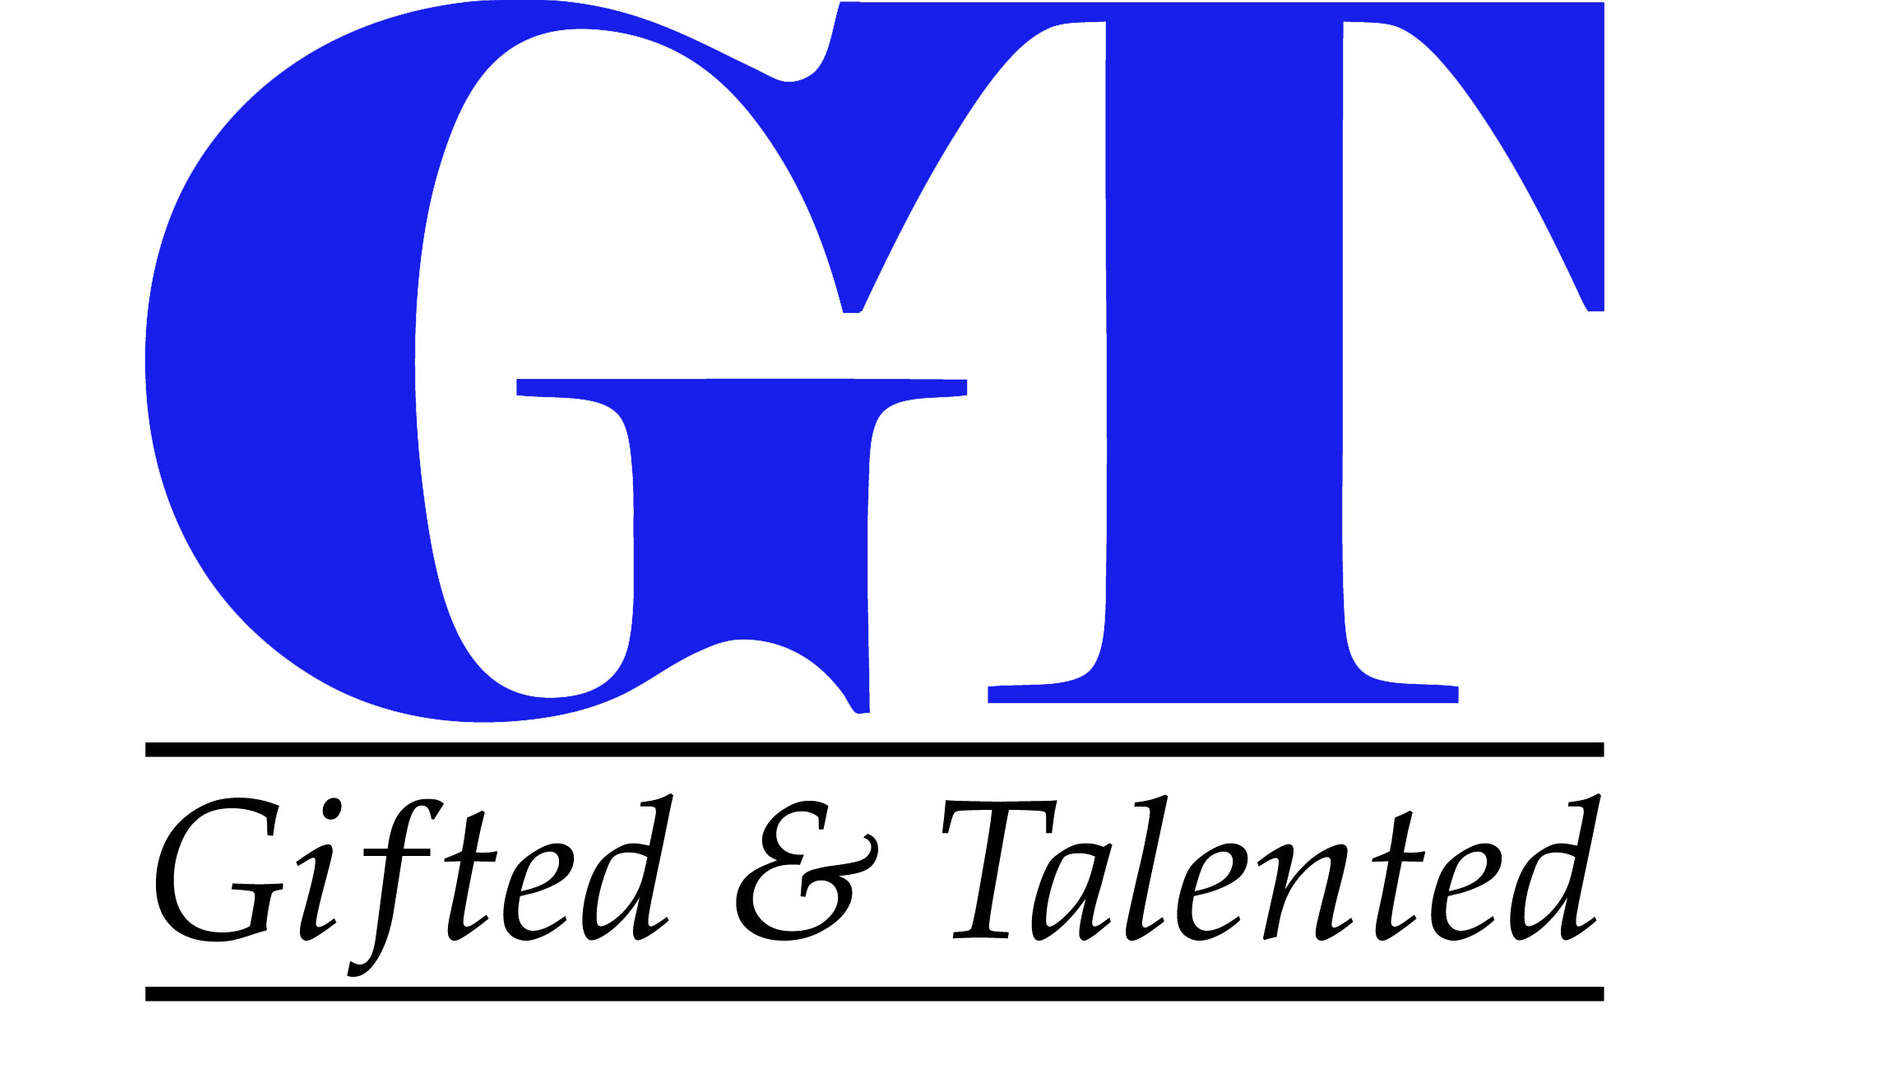 Gifted and Talented logo with link to Department of Education webpage